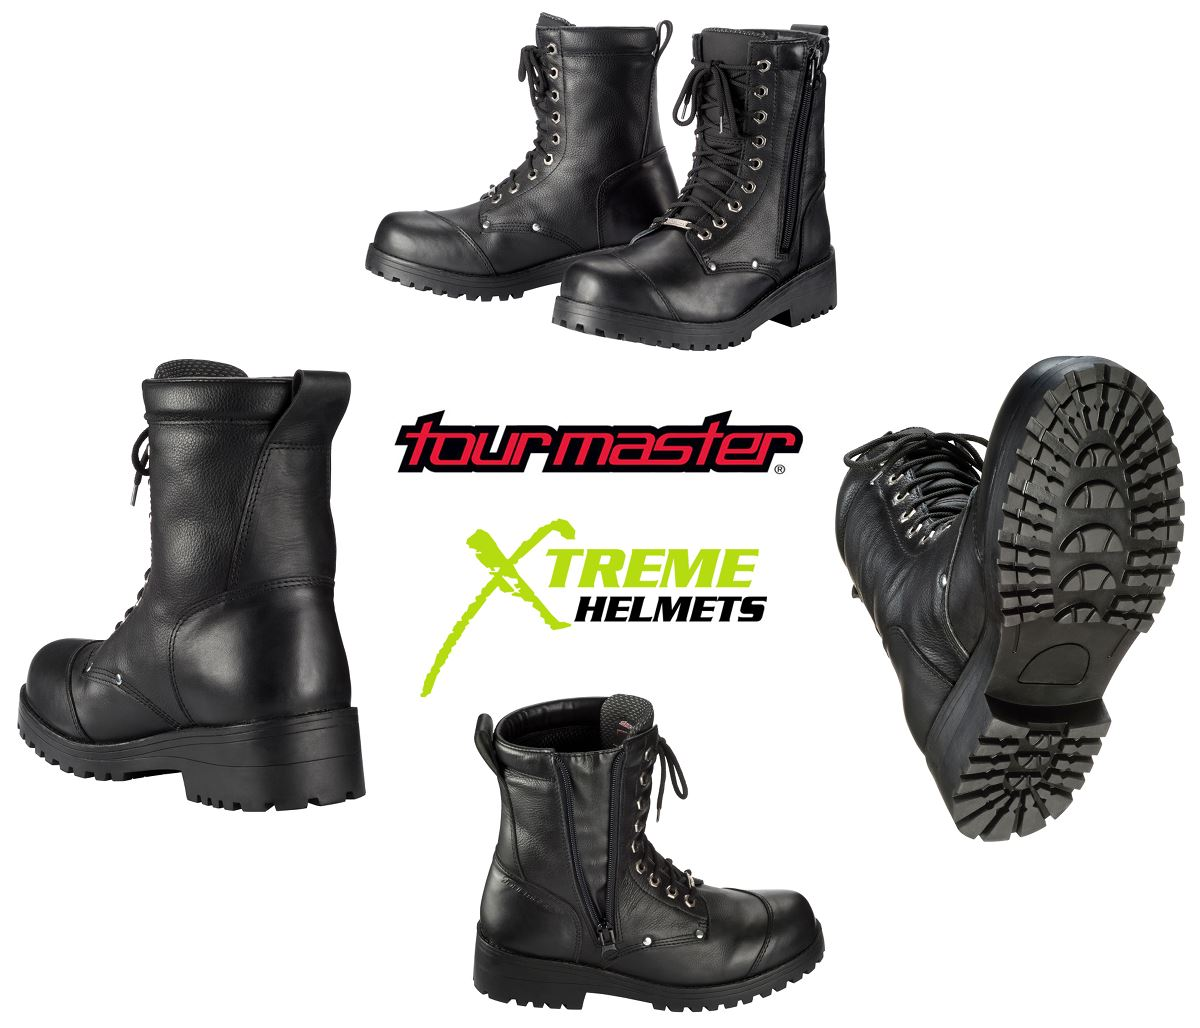 Tourmaster Coaster WP Boots Cruiser Motorcycle Leather Waterproof Breathable